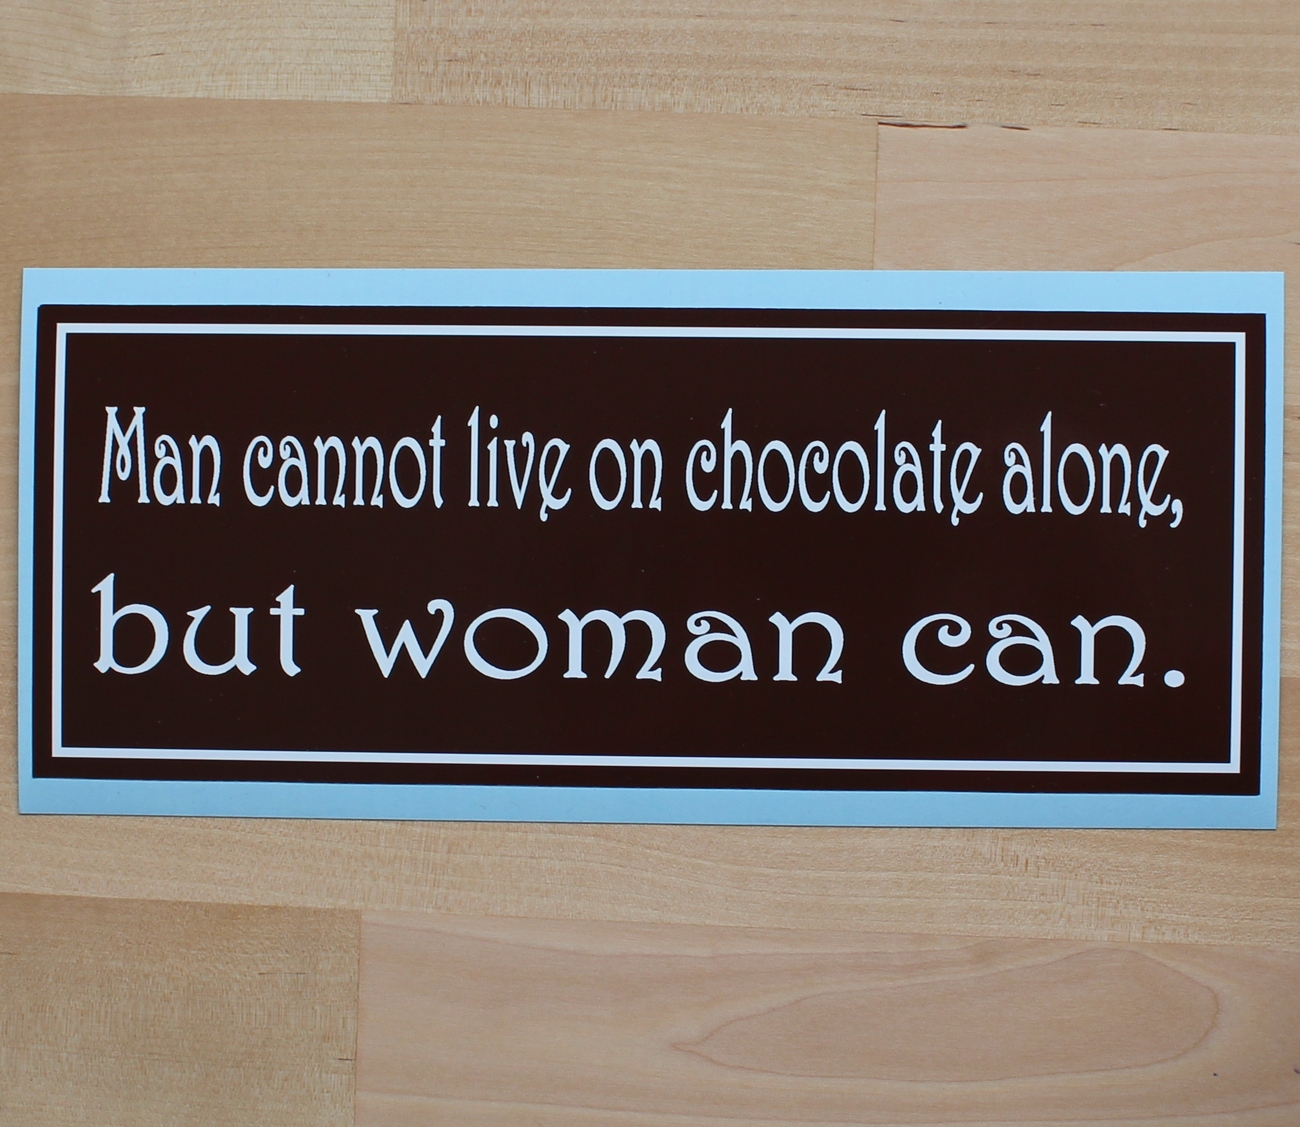 Man cannot live on chocolate alone, but woman can - bumper sticker